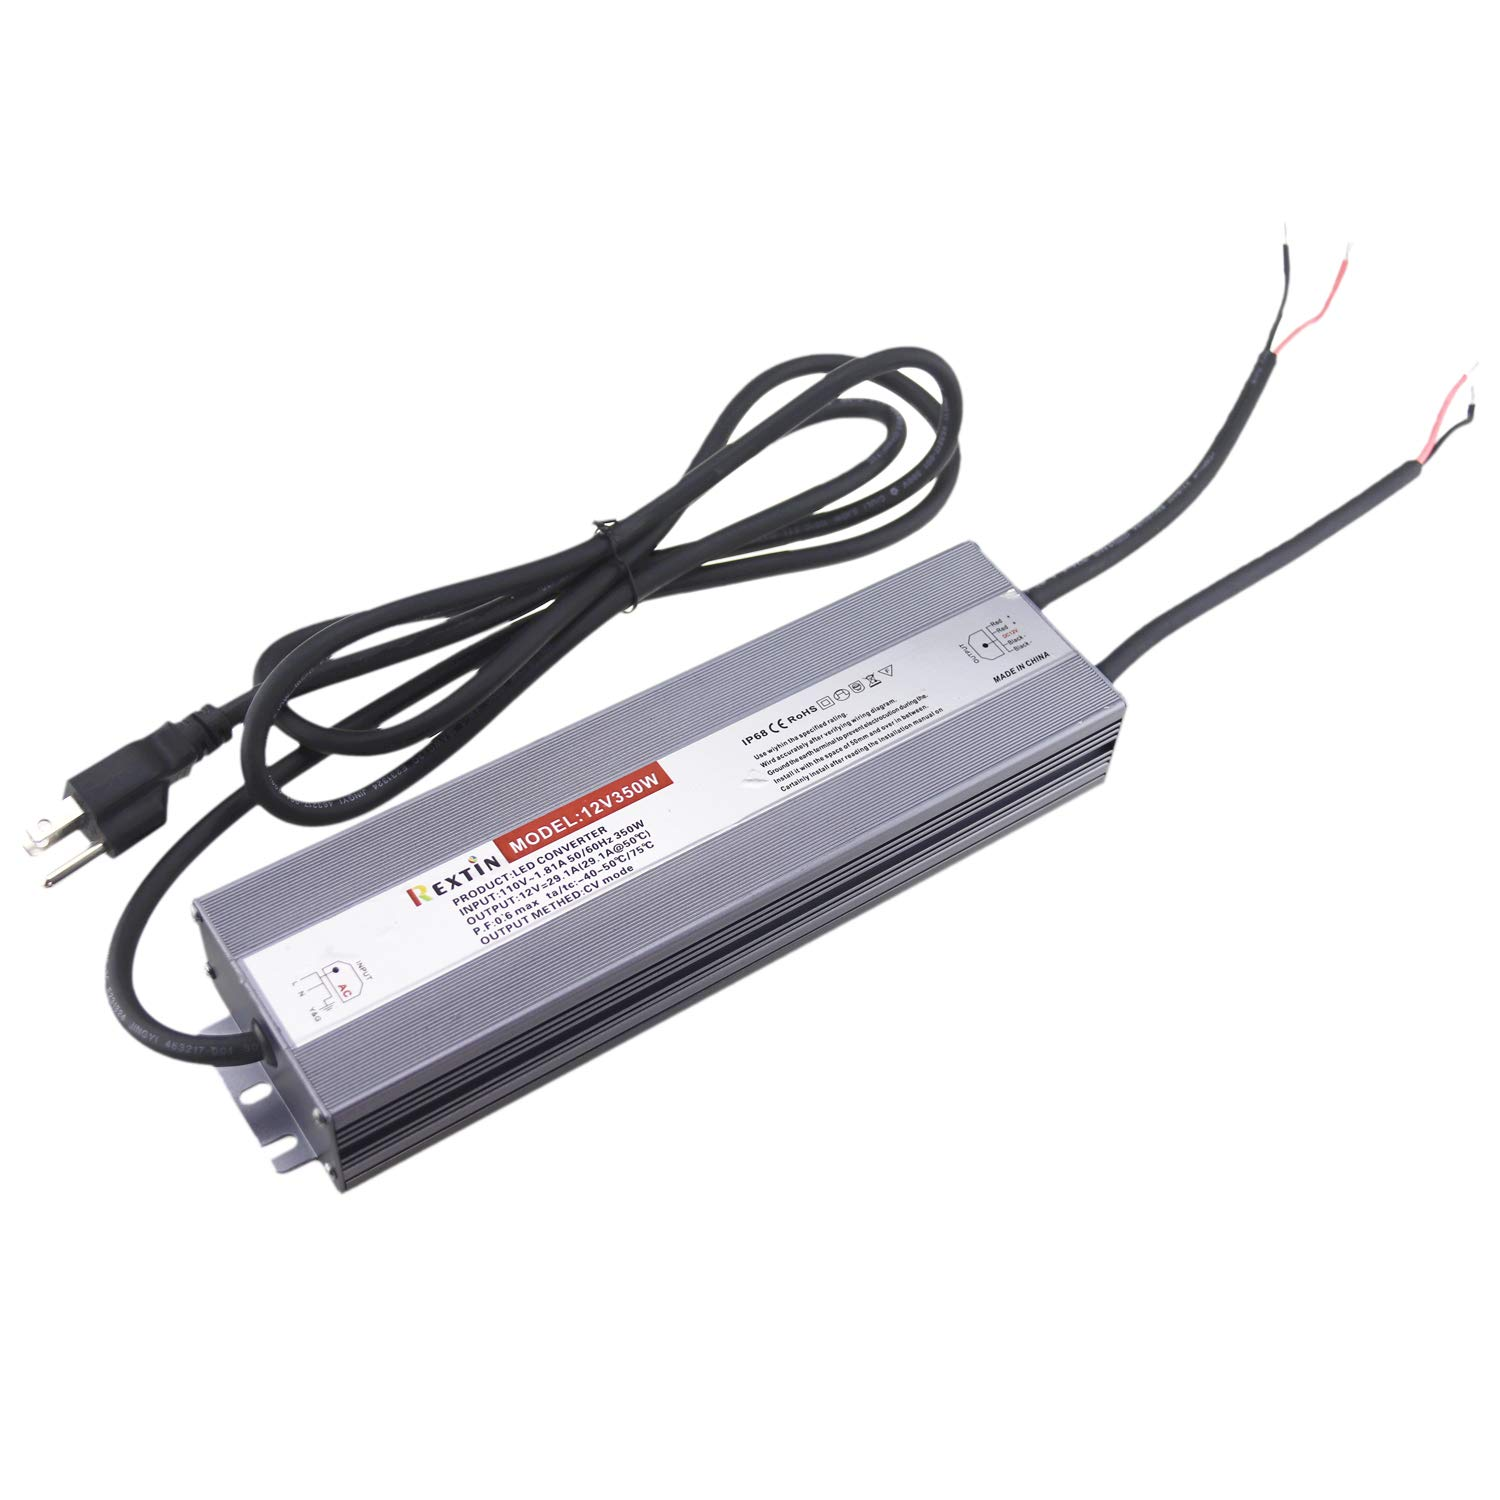 Rextin DC 12V 350W 29A Led Power Supply Constant Voltage LED Transformer IP67 Waterproof Aluminum Alloy Shell For LED Lighting Led Strip Led Module LED Power Accessories (350W 29.1A)